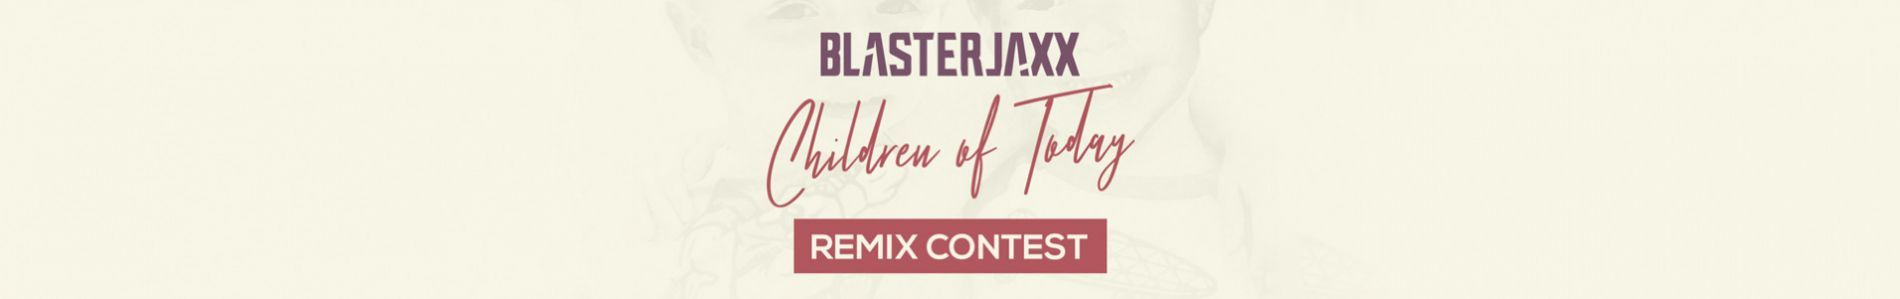 Remix Blasterjaxx' 'Children of Today' and win a FL Studio package!